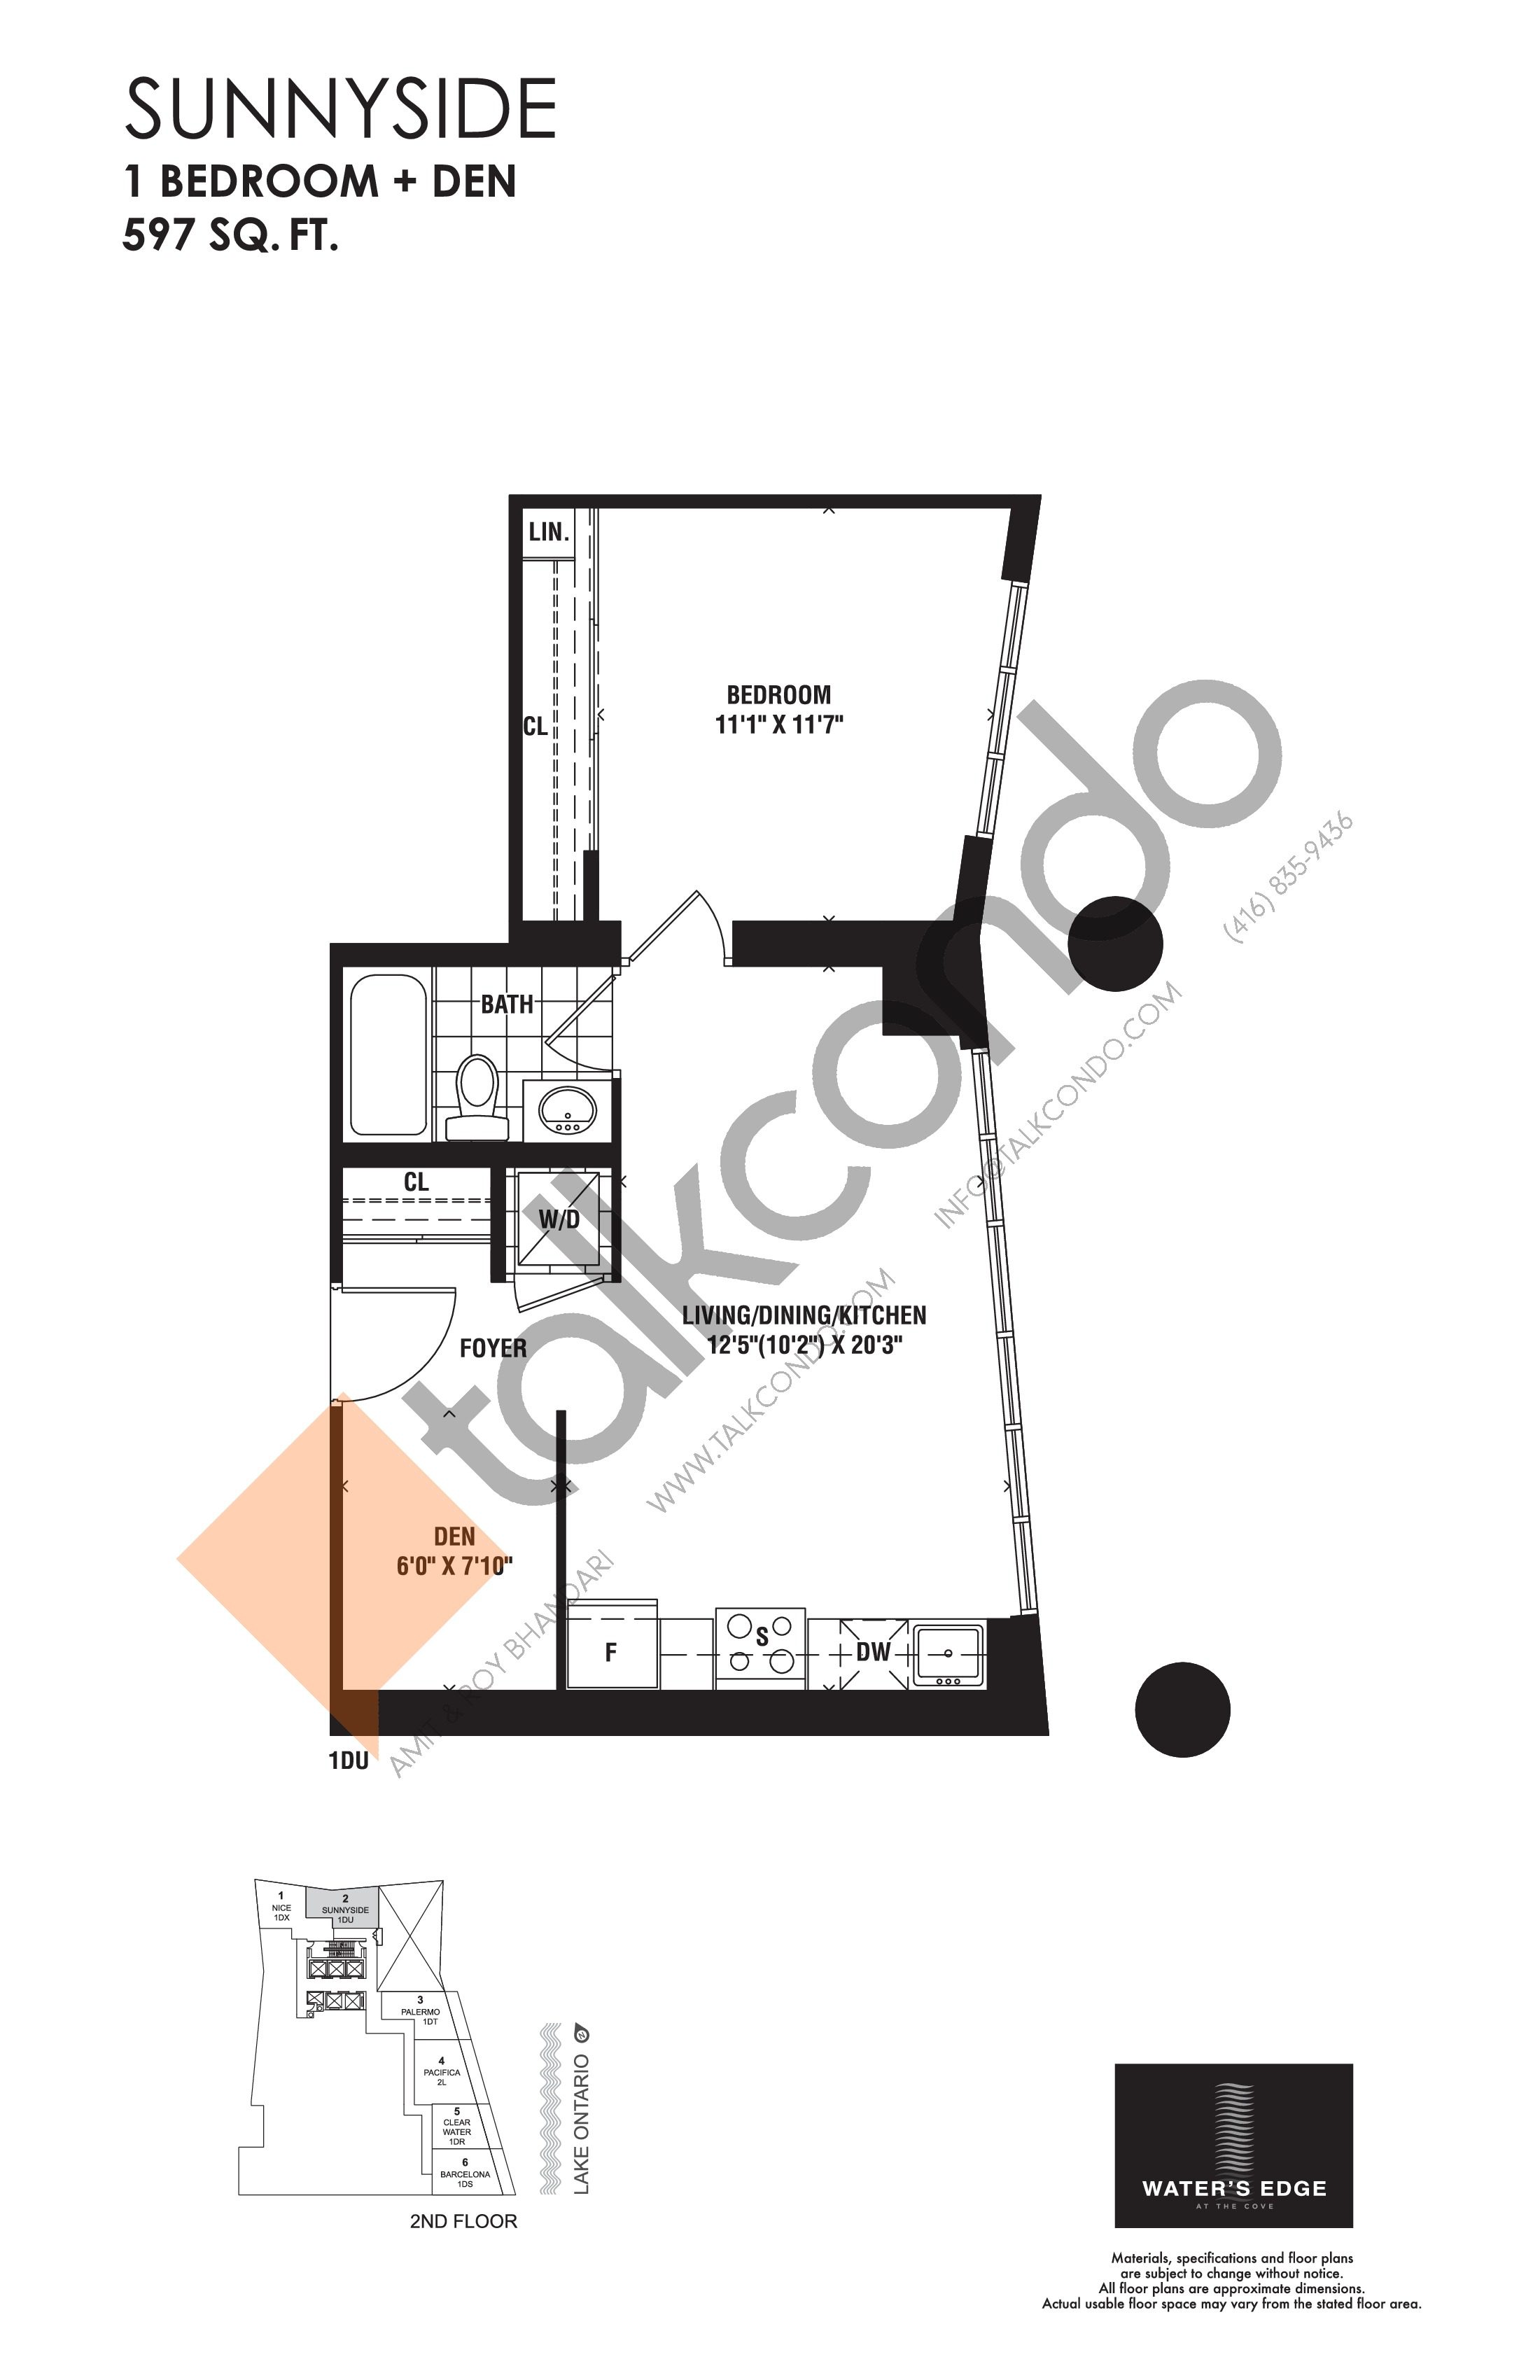 Sunnyside Floor Plan at Water's Edge at the Cove Condos - 597 sq.ft